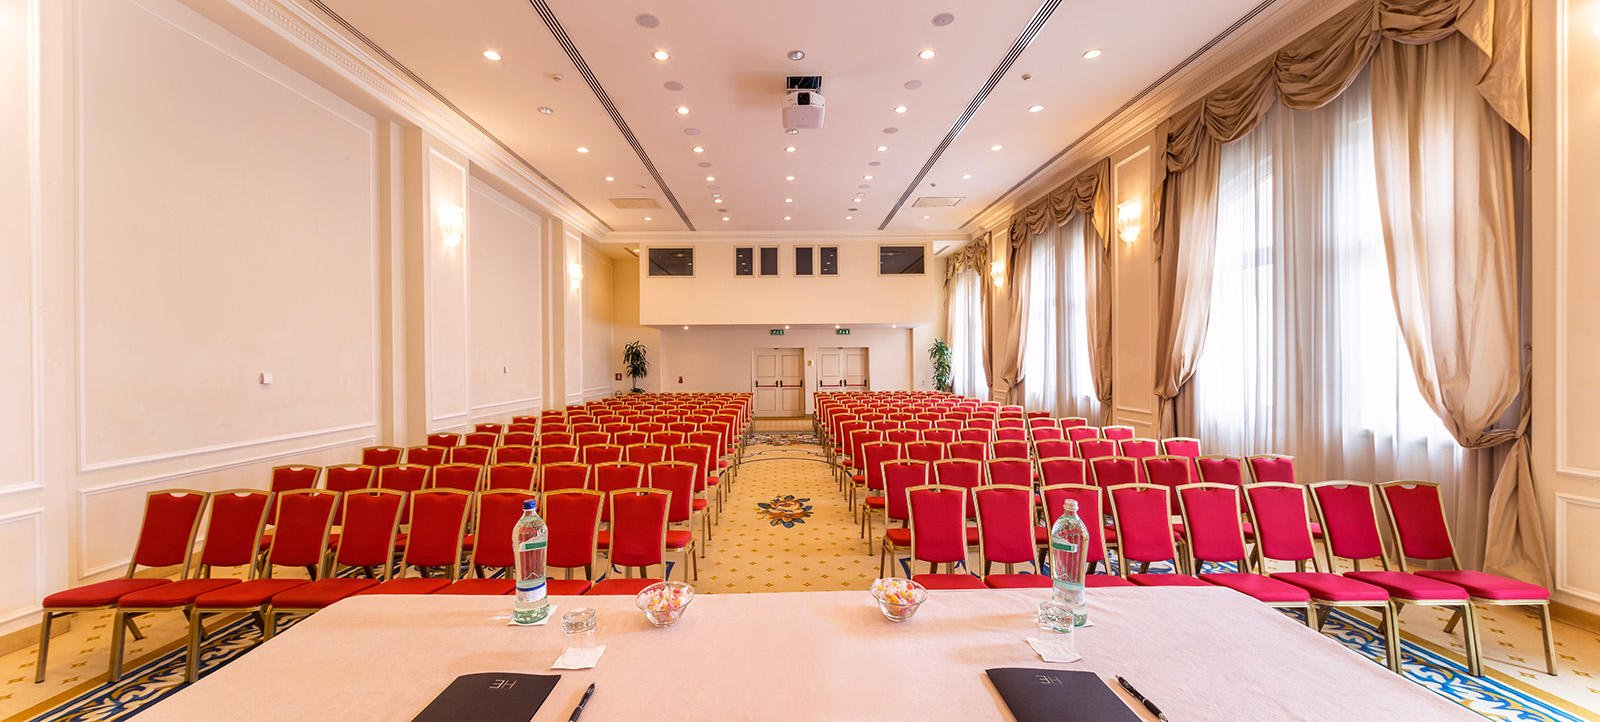 Conferences at Grand Visconti Palace in Milan